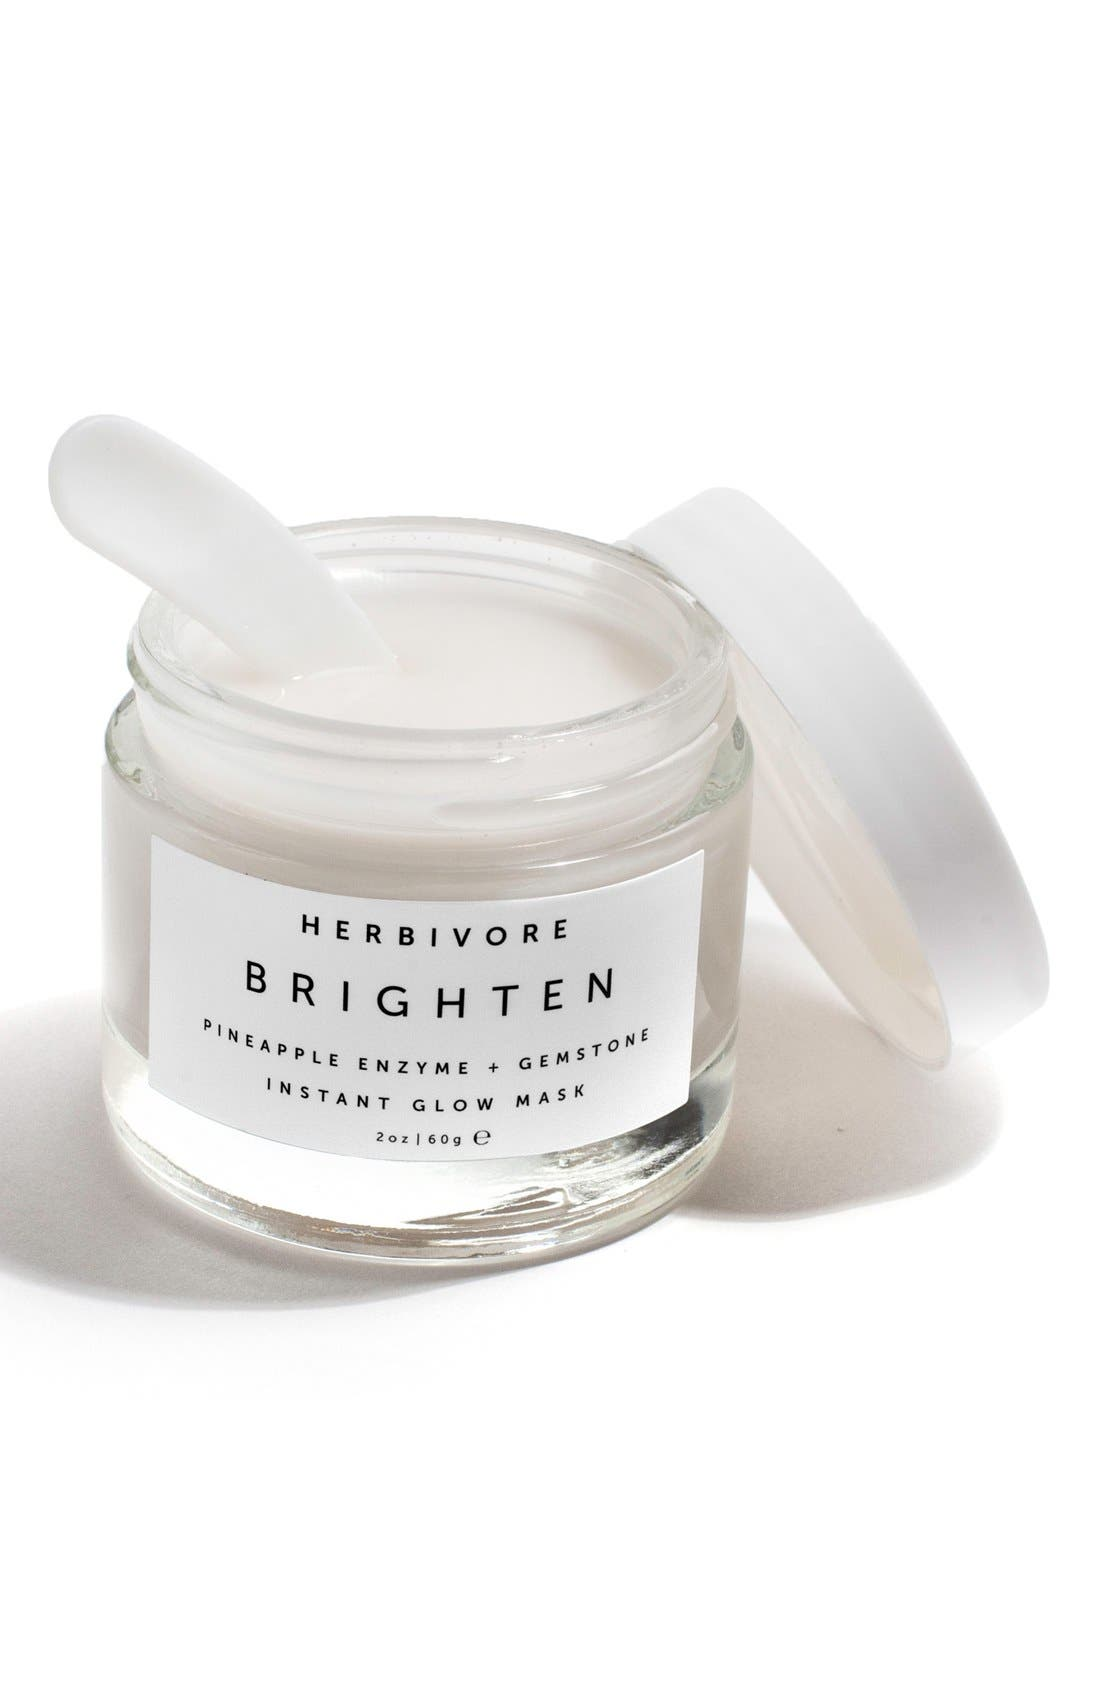 Brighten Pineapple Enzyme + Gemstone Instant Glow Mask,                             Alternate thumbnail 4, color,                             NO COLOR